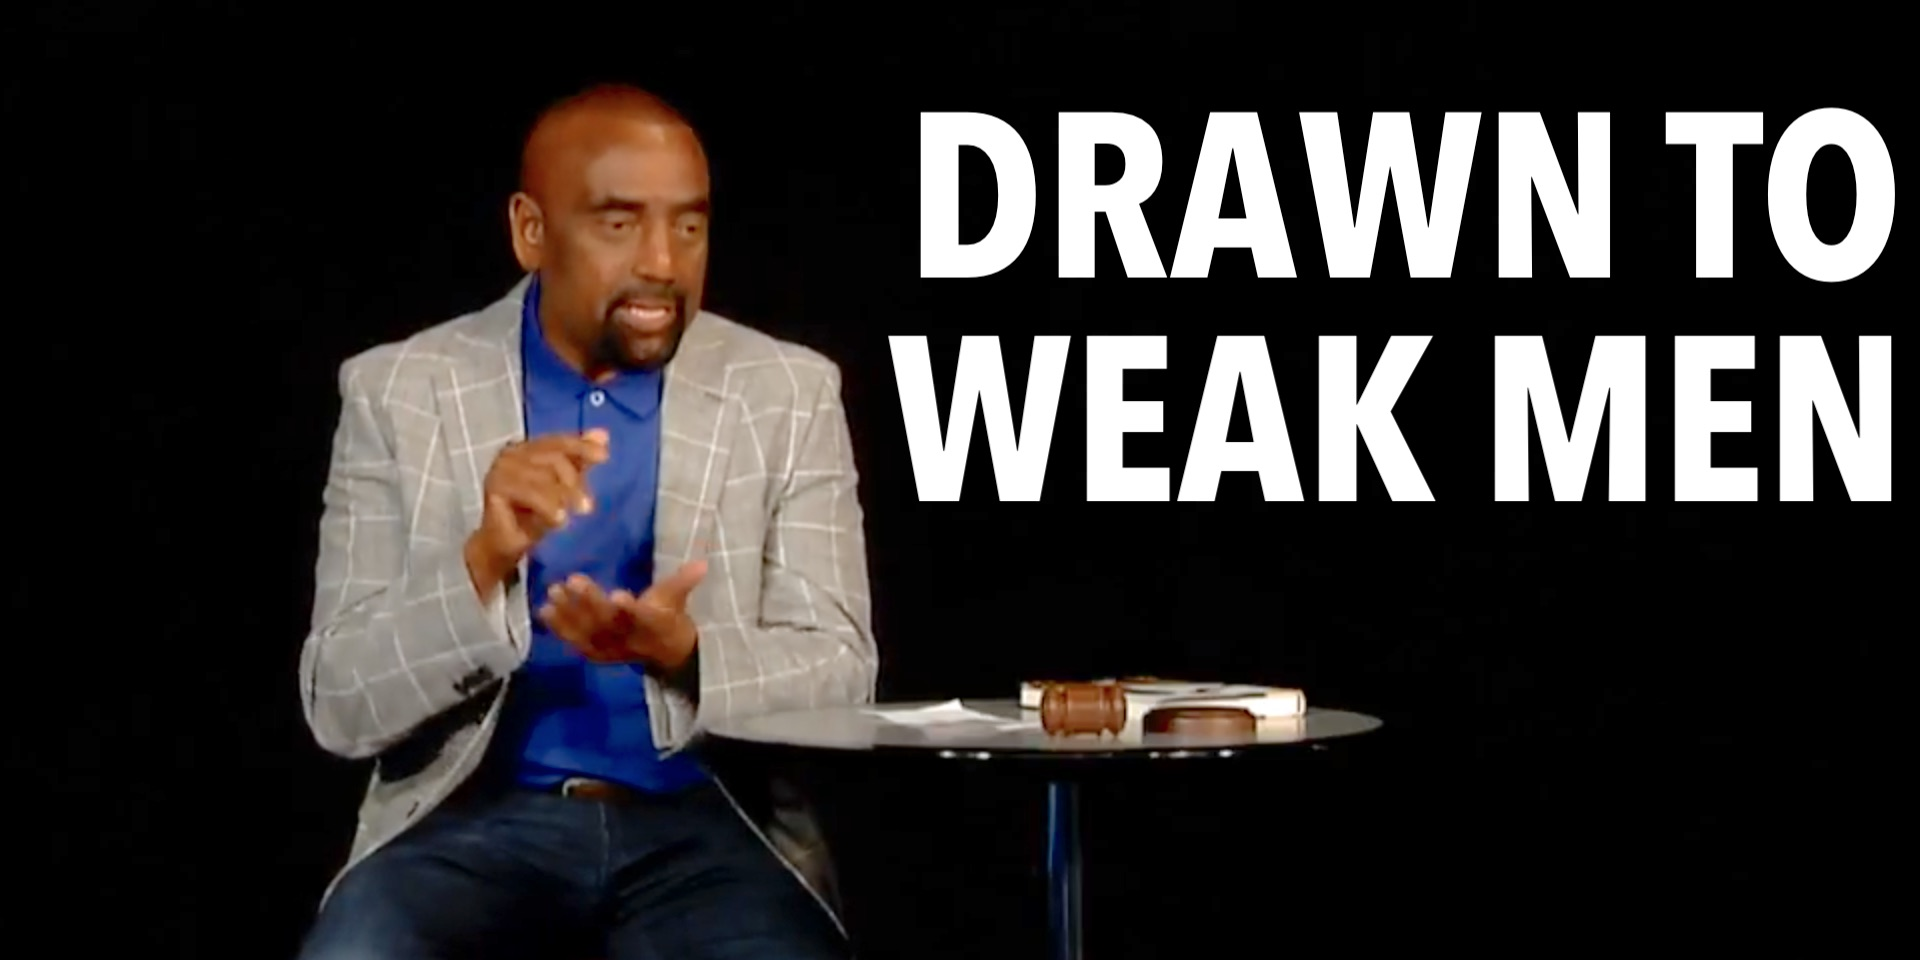 Jesse asks Biblical Question: Why are women drawn to weak men?